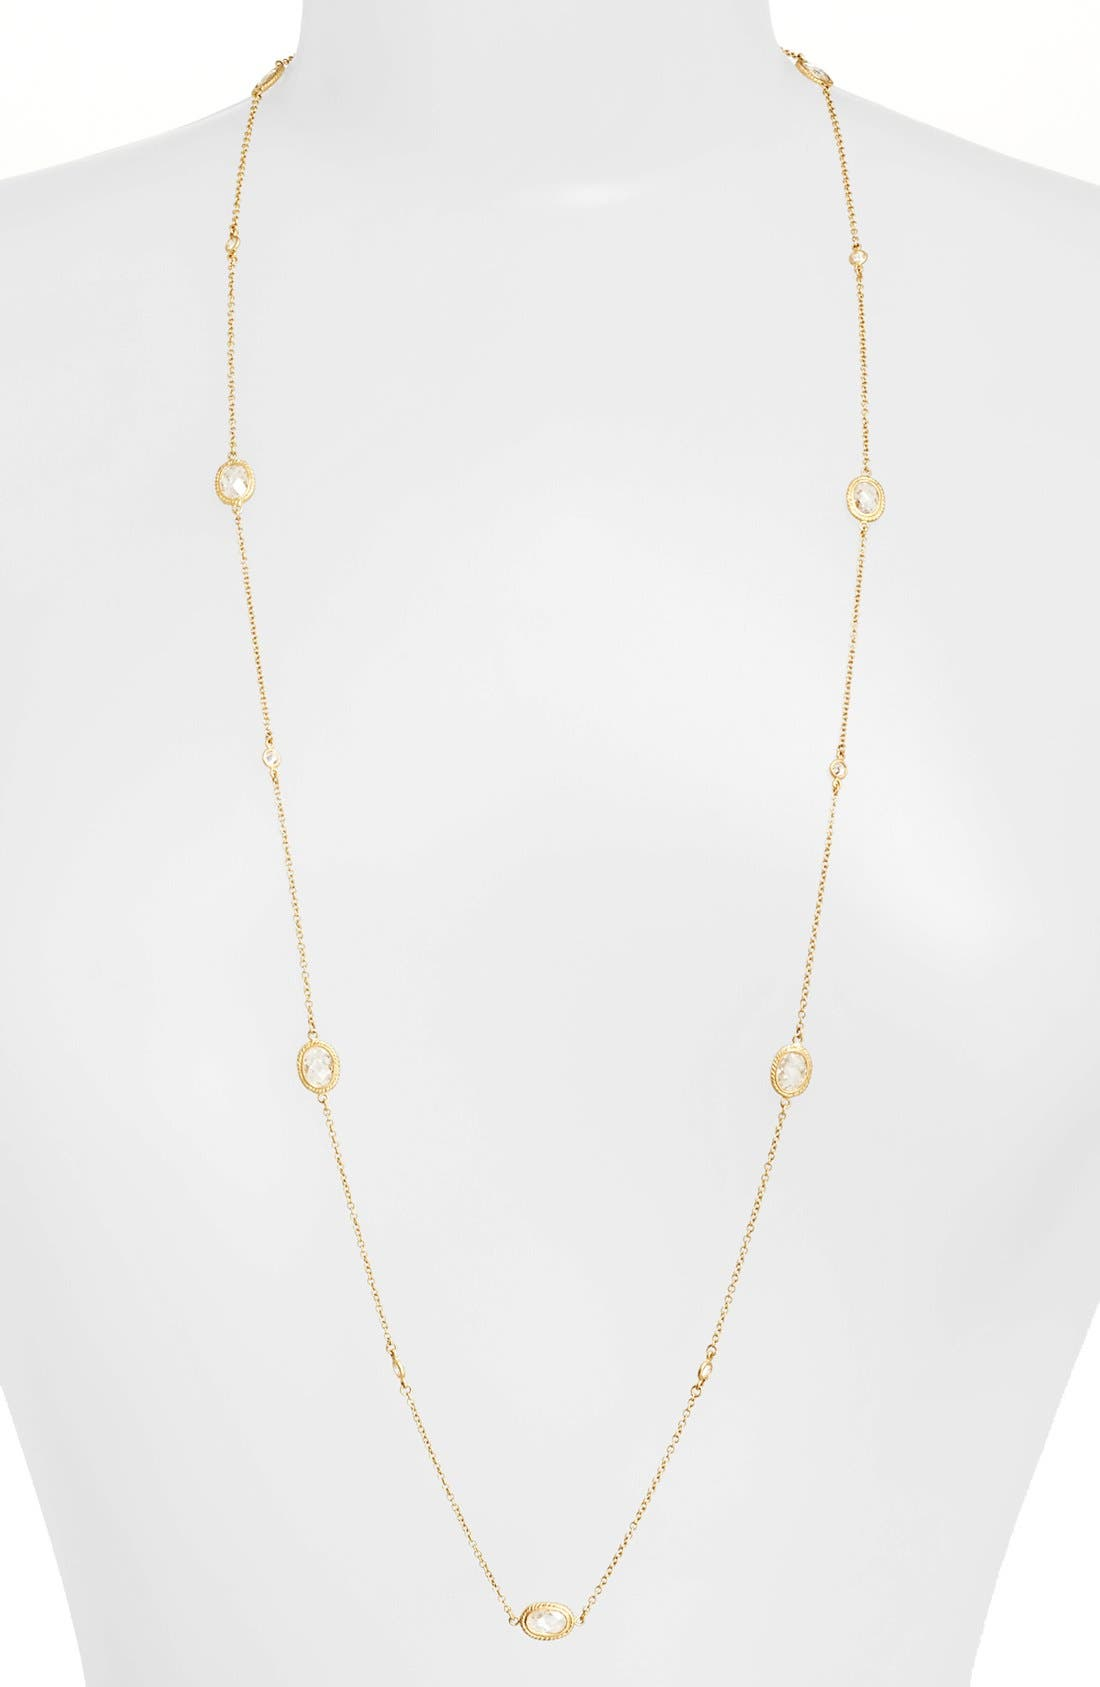 'Mercer' Raindrop Station Long Wrap Necklace,                             Main thumbnail 1, color,                             GOLD/ CLEAR